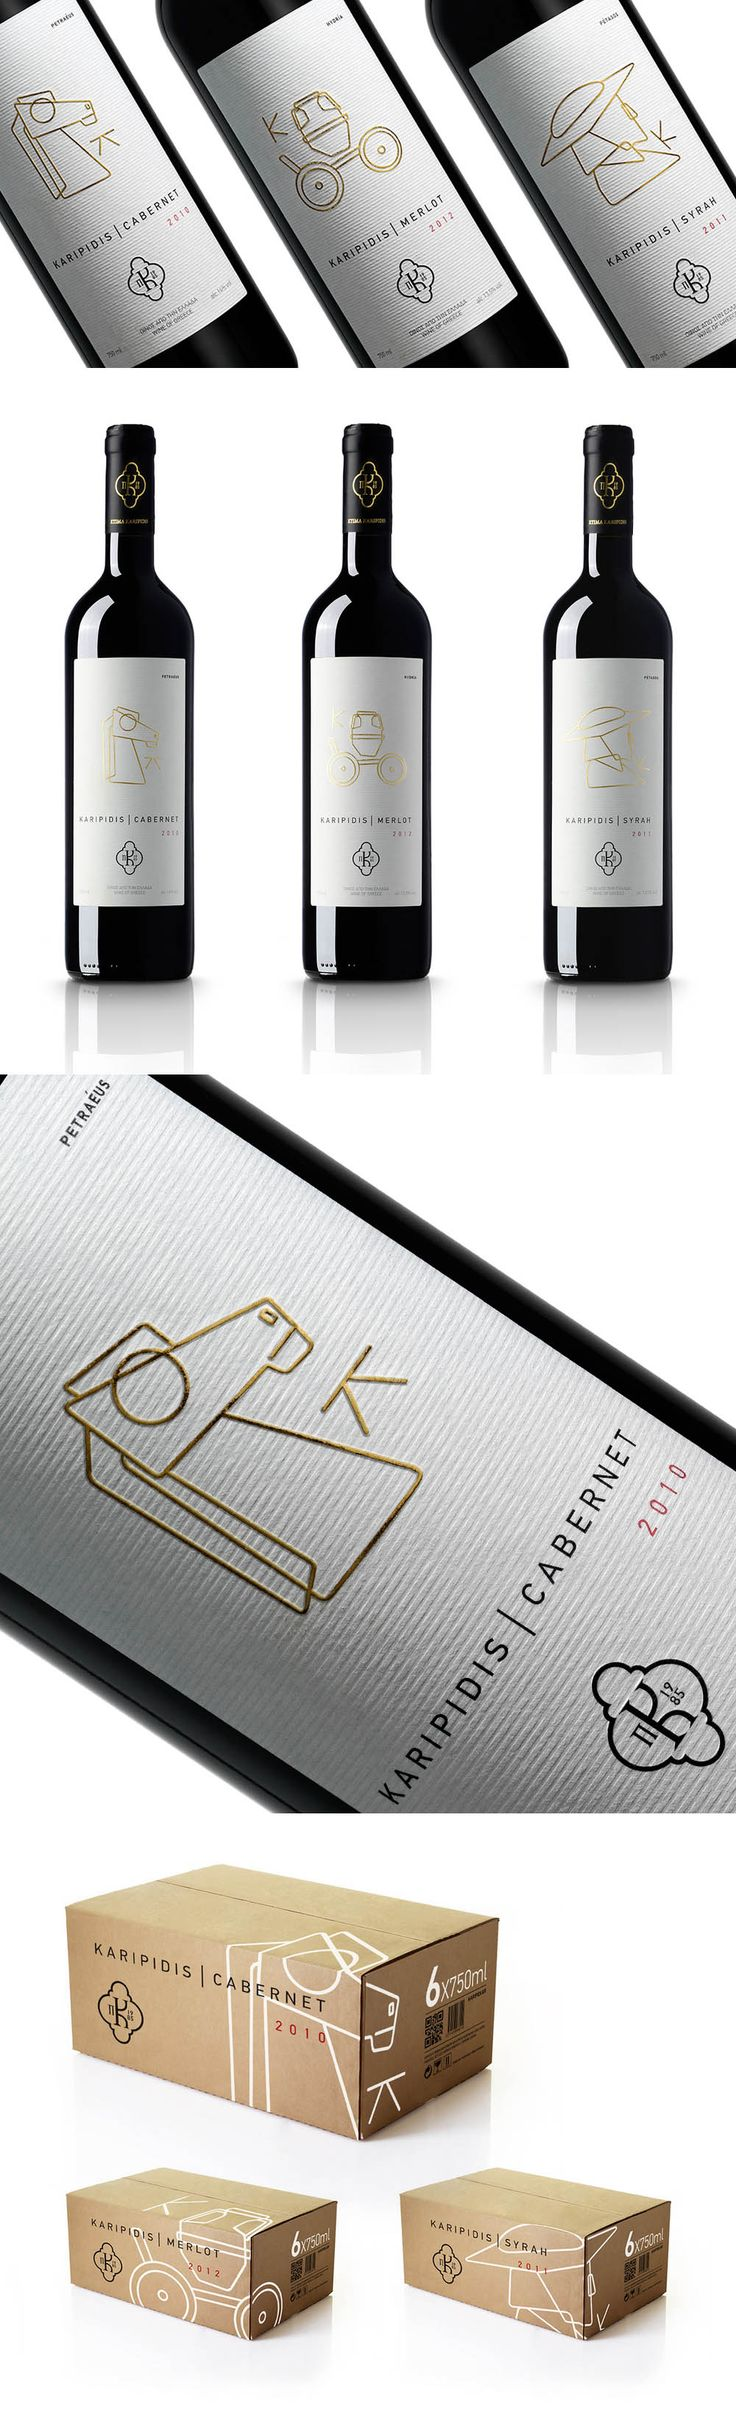 Karipidis Winery Packaging Design PD